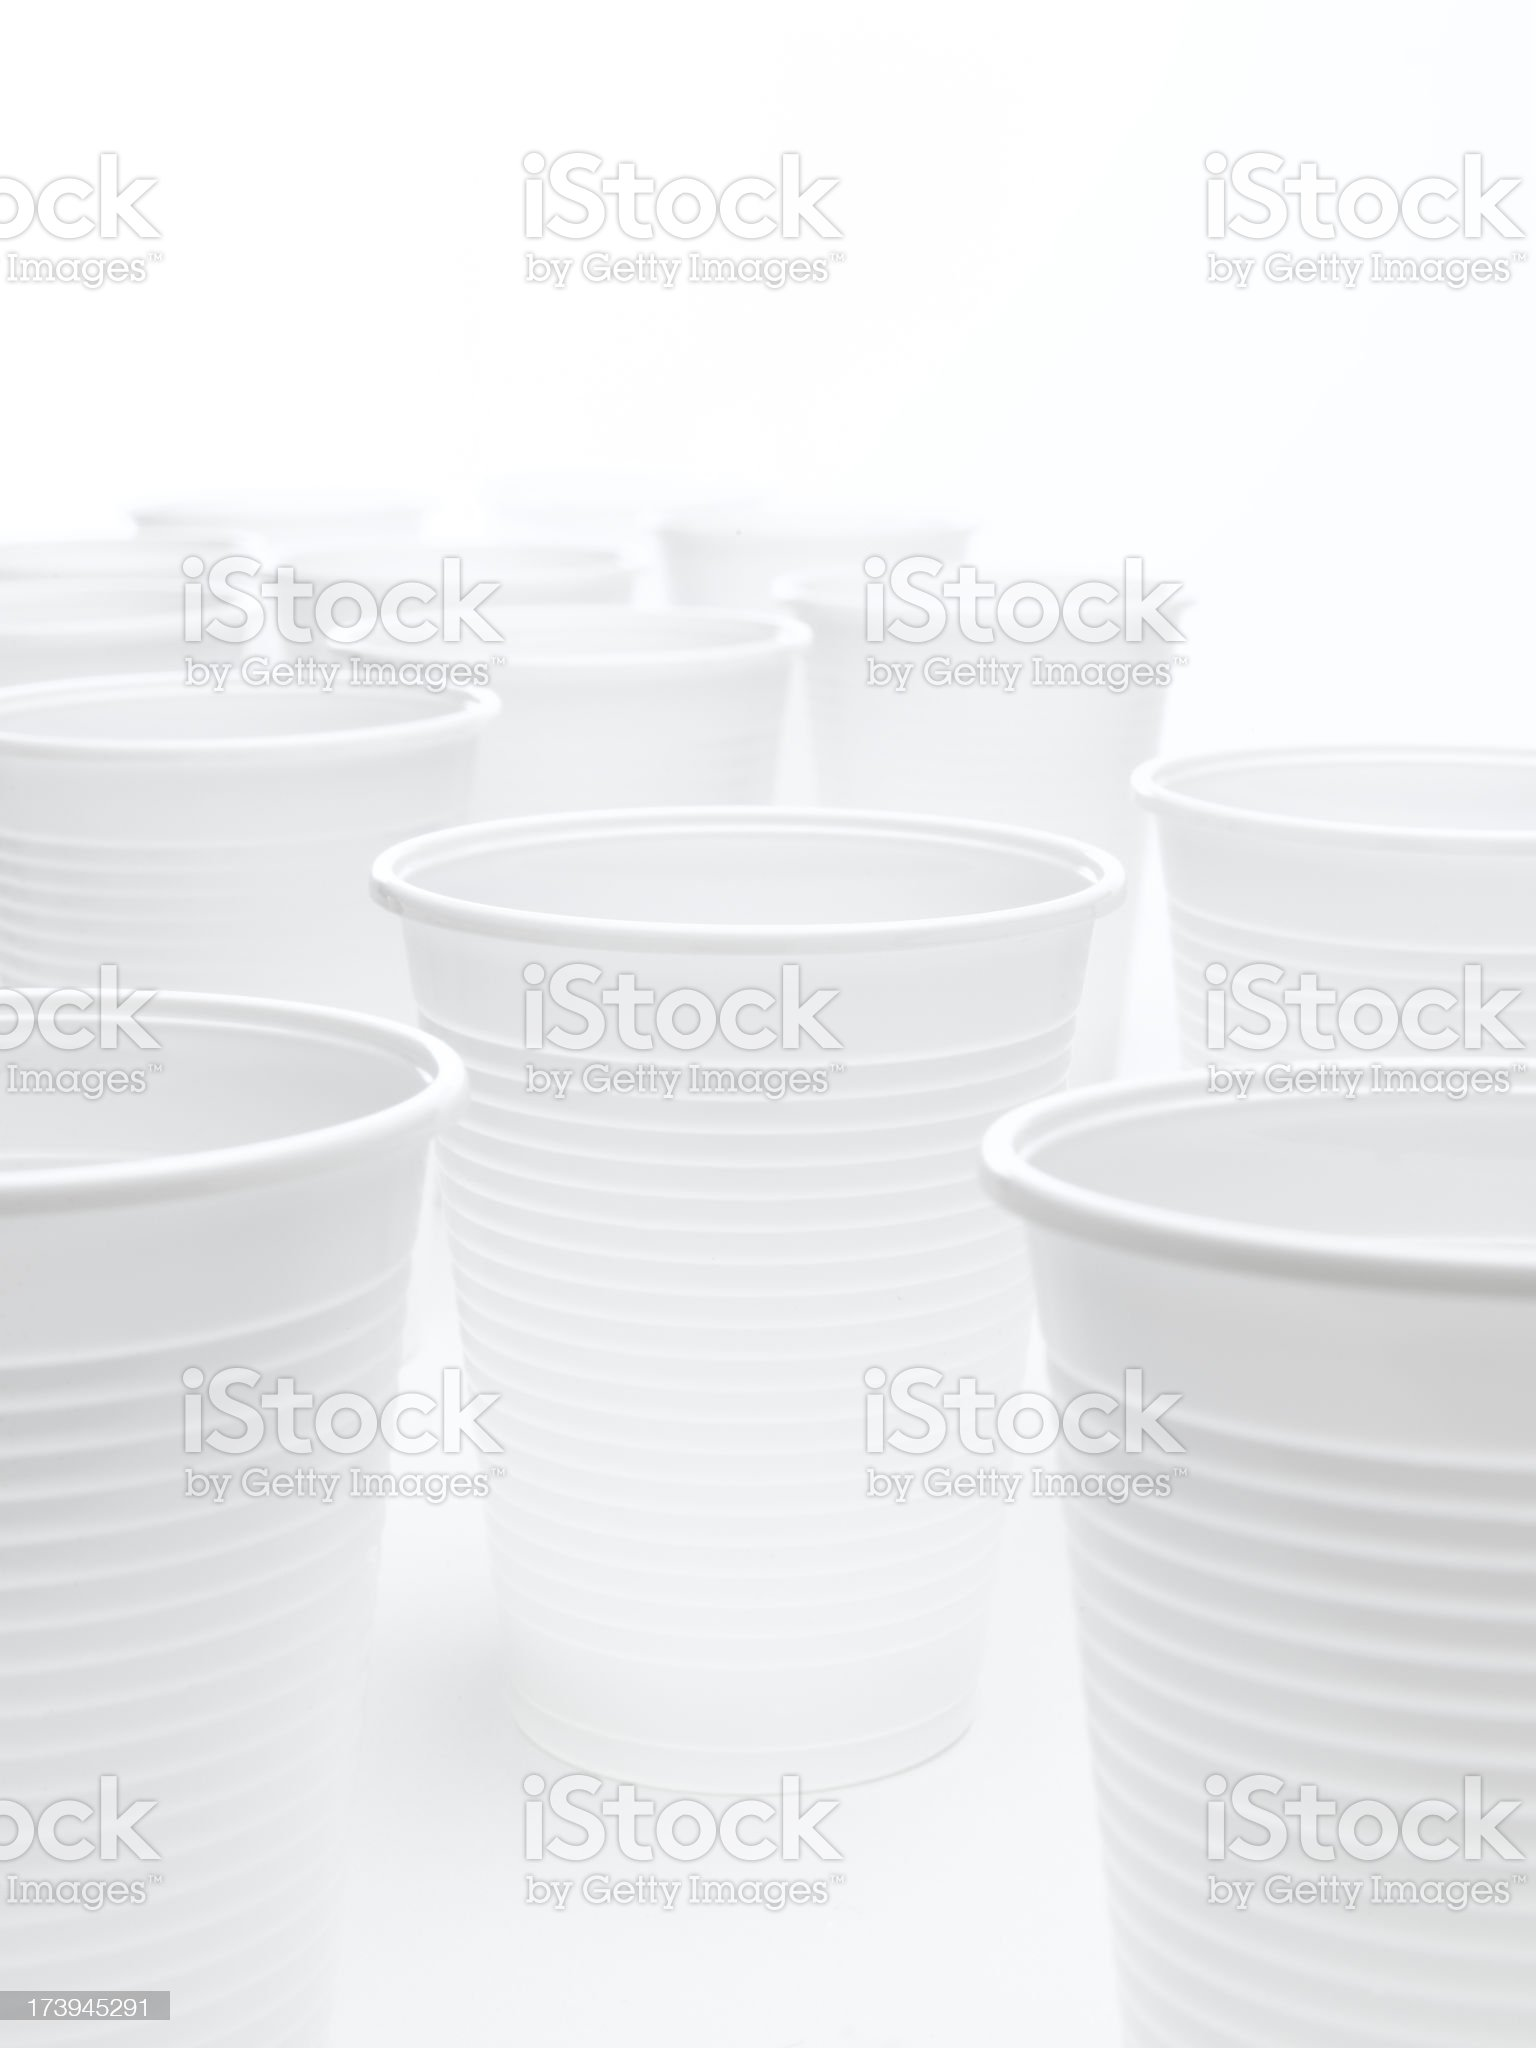 selection of white plastic cups royalty-free stock photo